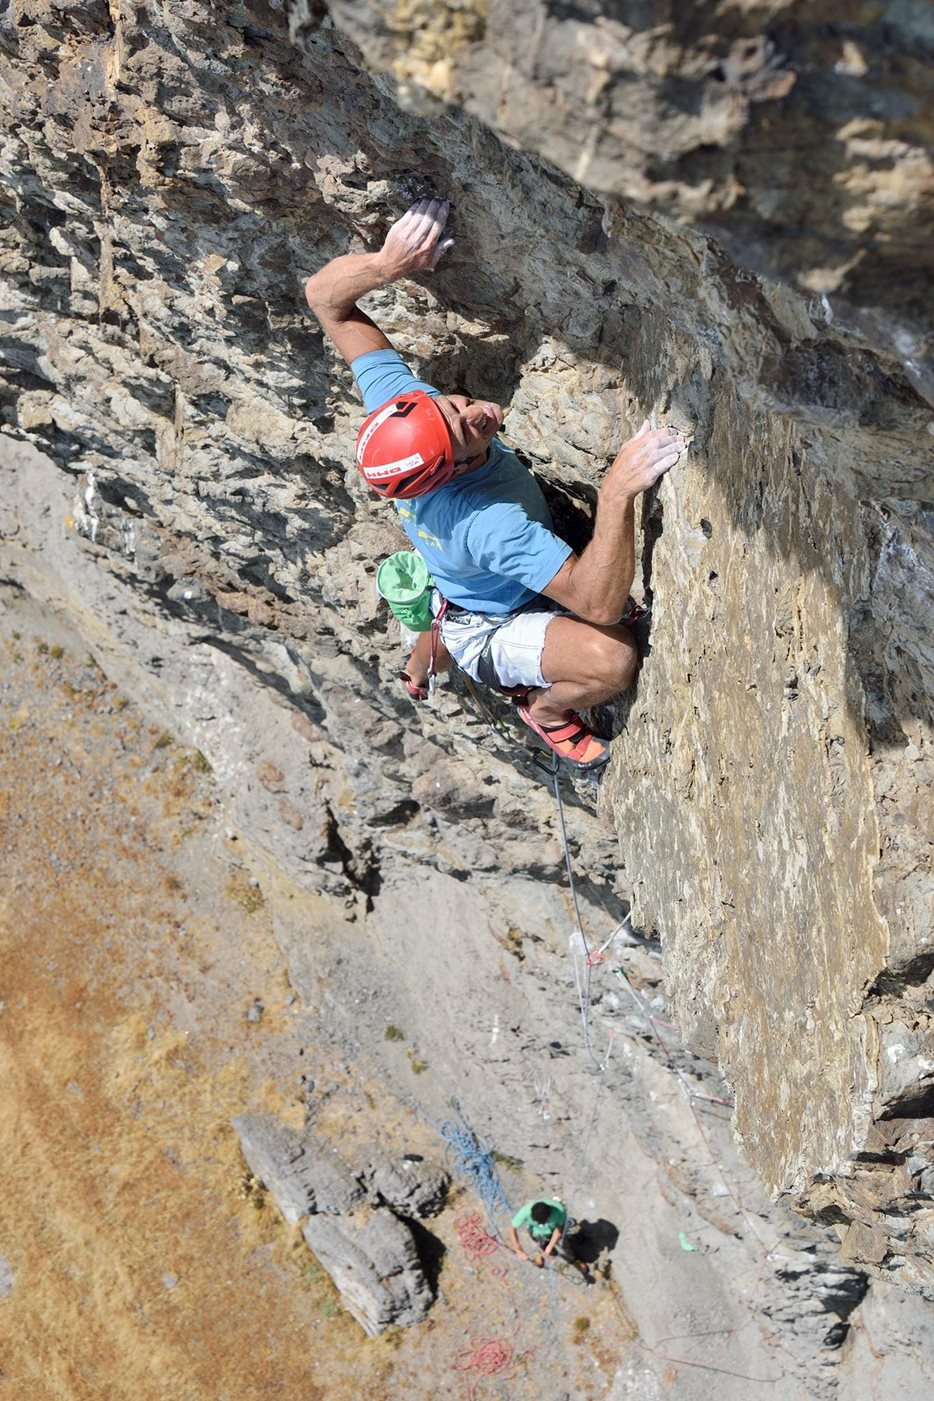 Mick making the third ascent of Requiem for a Vampire (E8 6b) on Stigmata Buttress, Craig Dorys. © Ray Wood